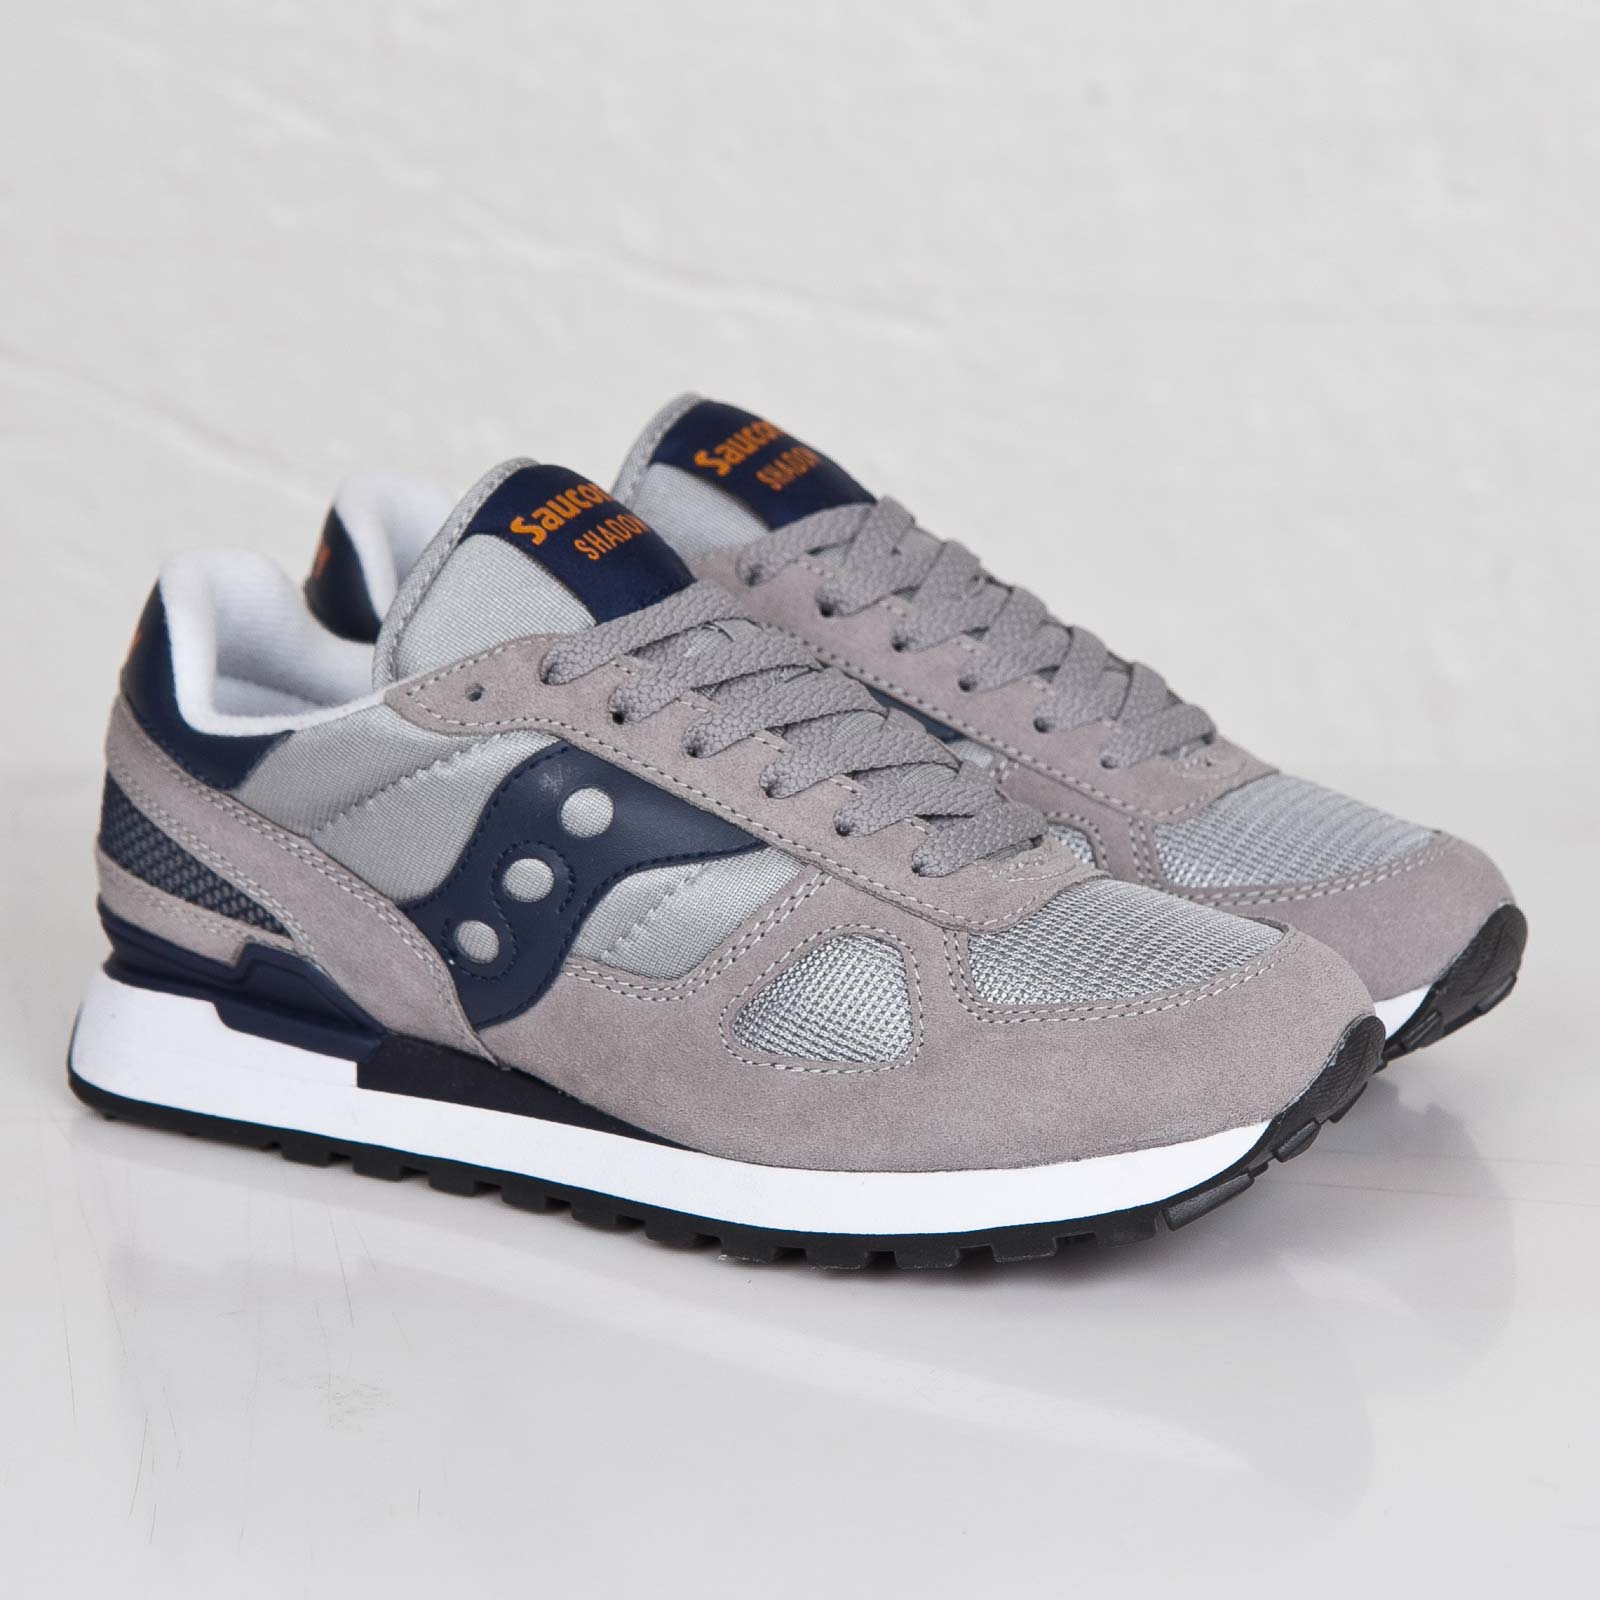 competitive price 08d34 b266a Saucony Shadow Original - S2108-563 - Sneakersnstuff ...